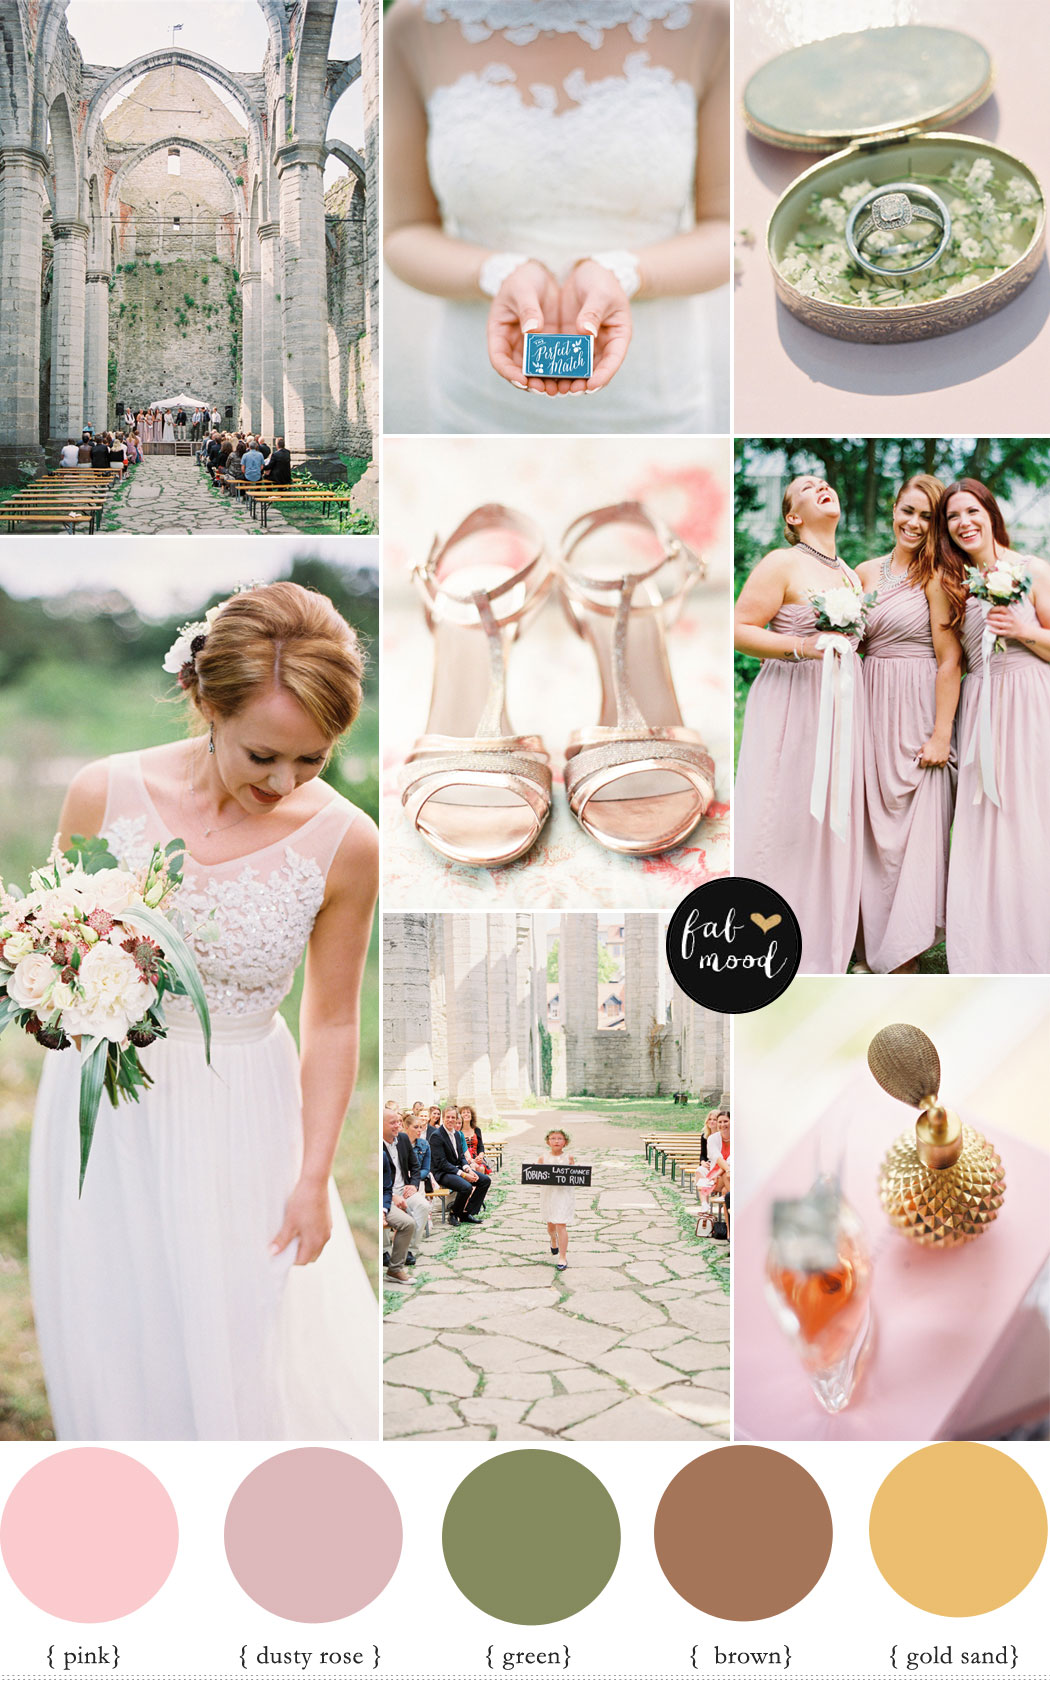 Earthy Tones WeddingWedding Theme